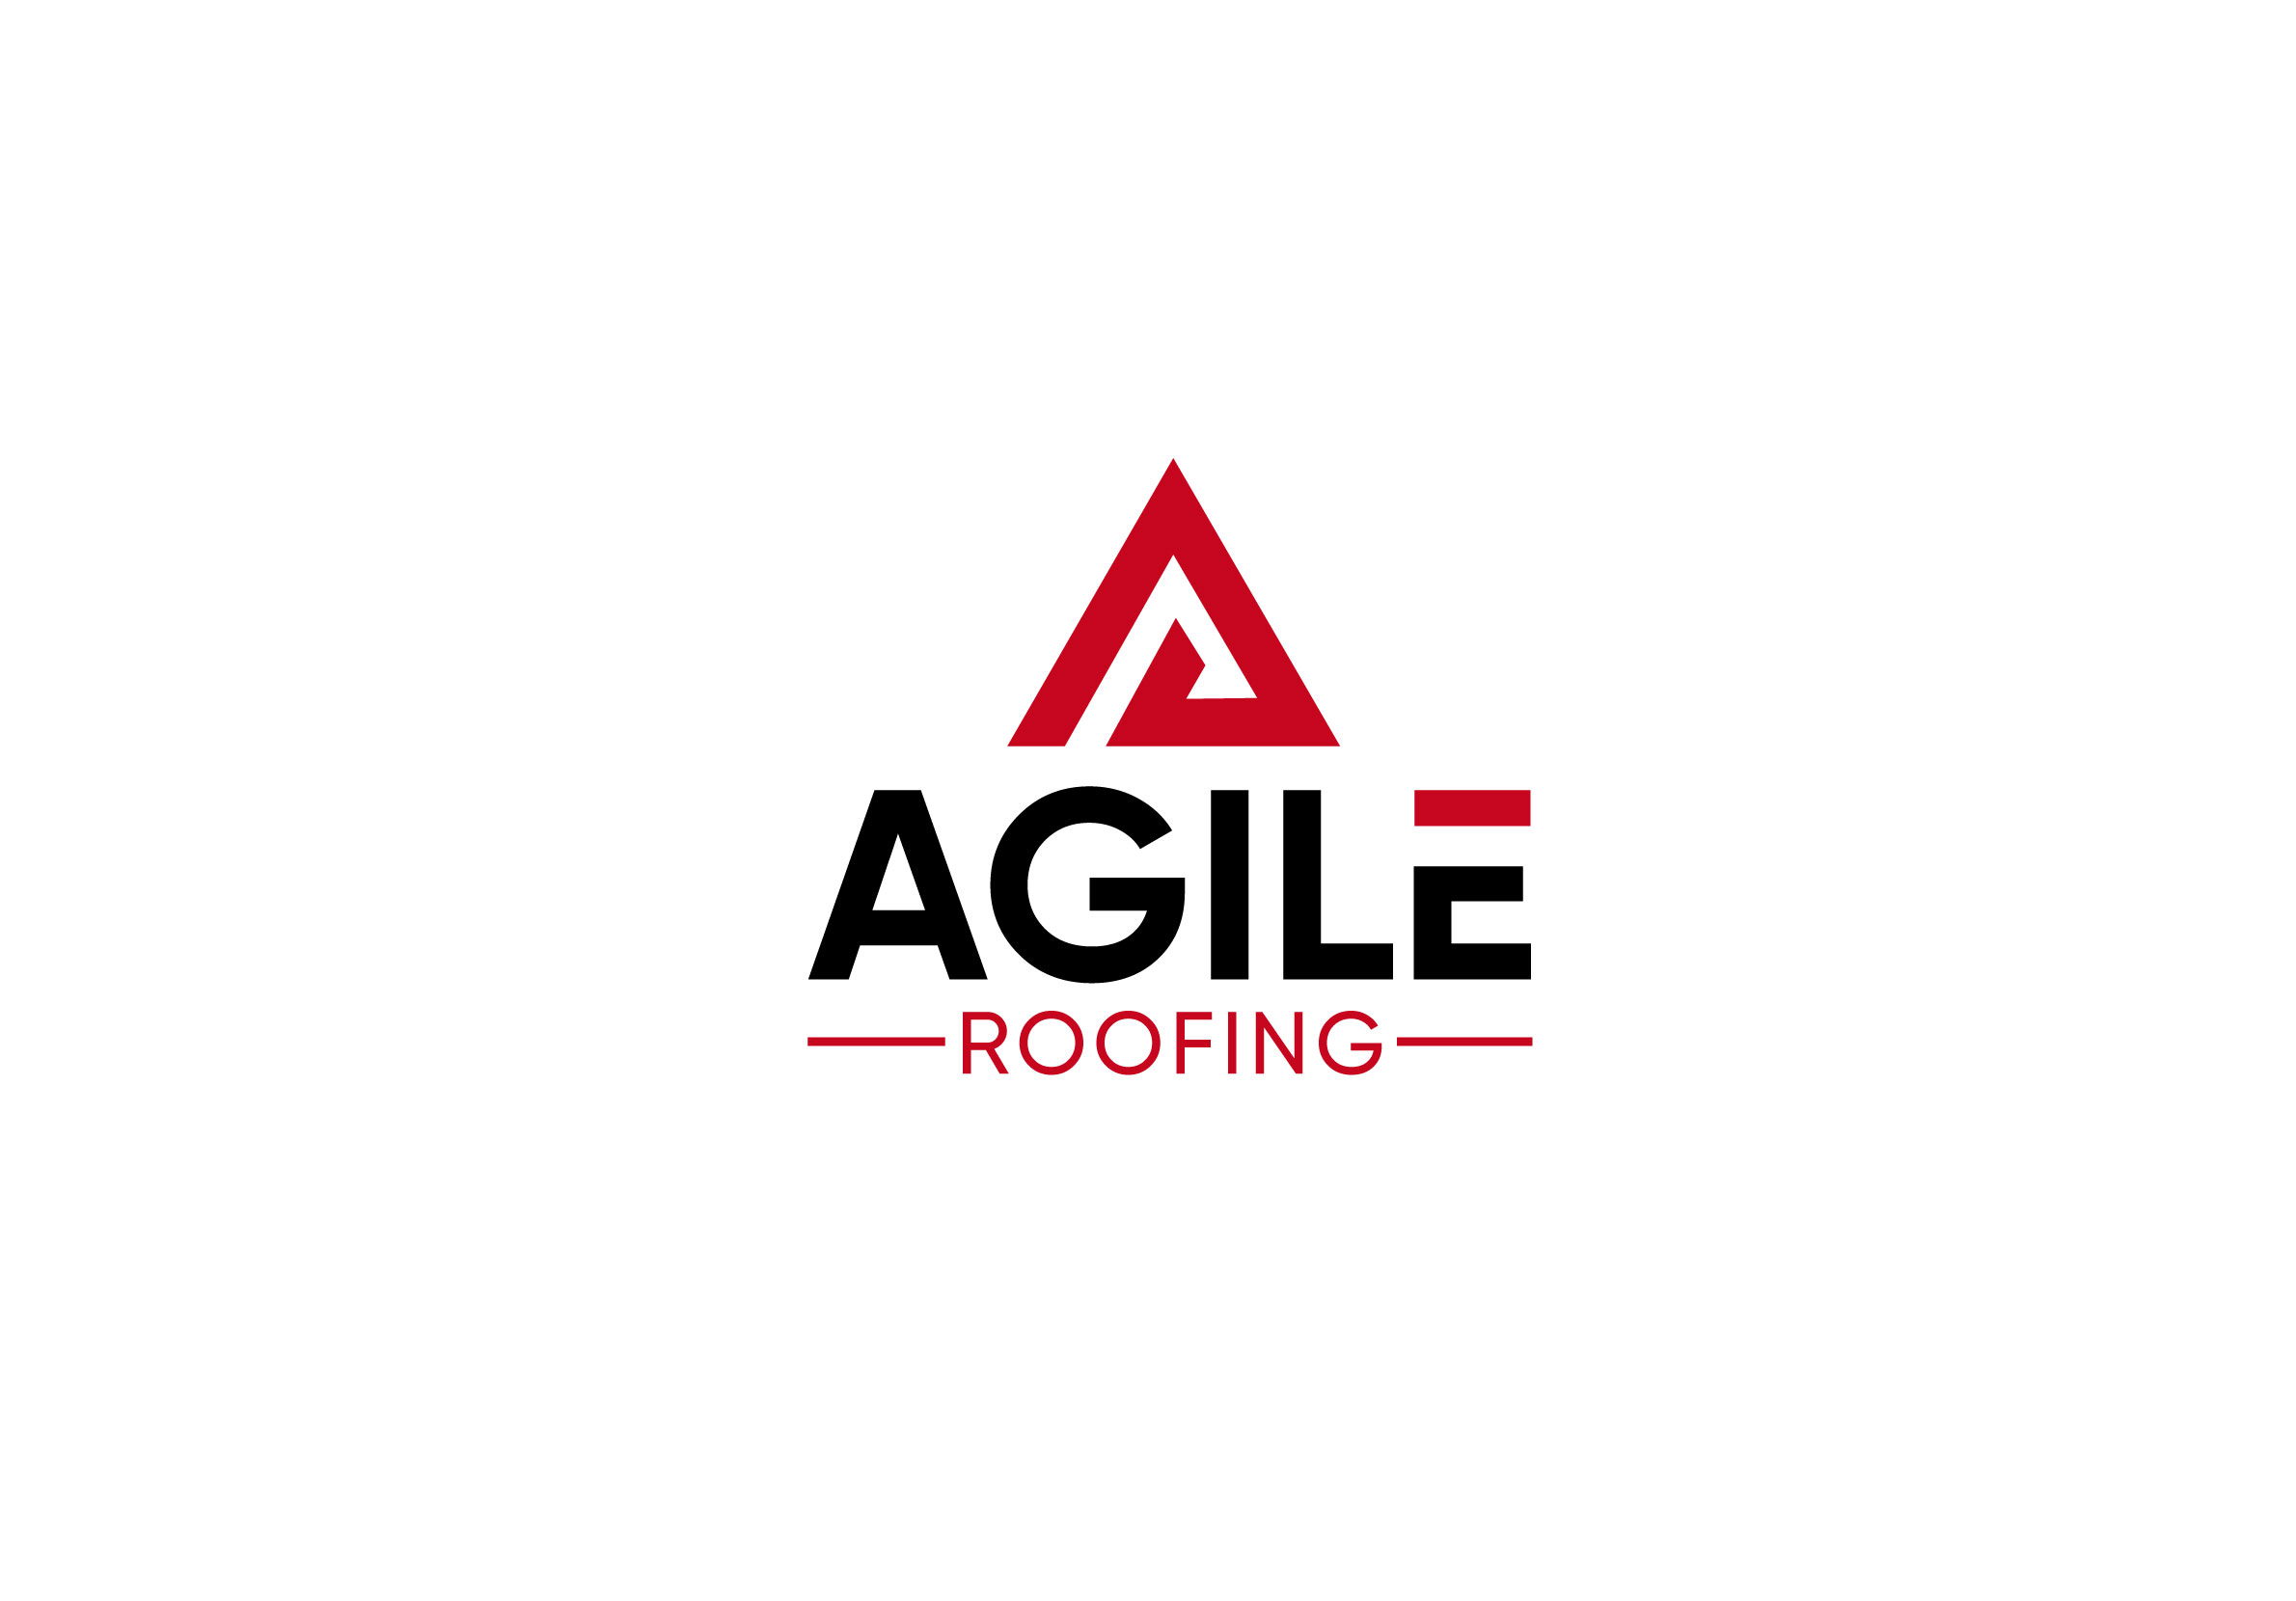 official business logo of Agile Roofing Canberra